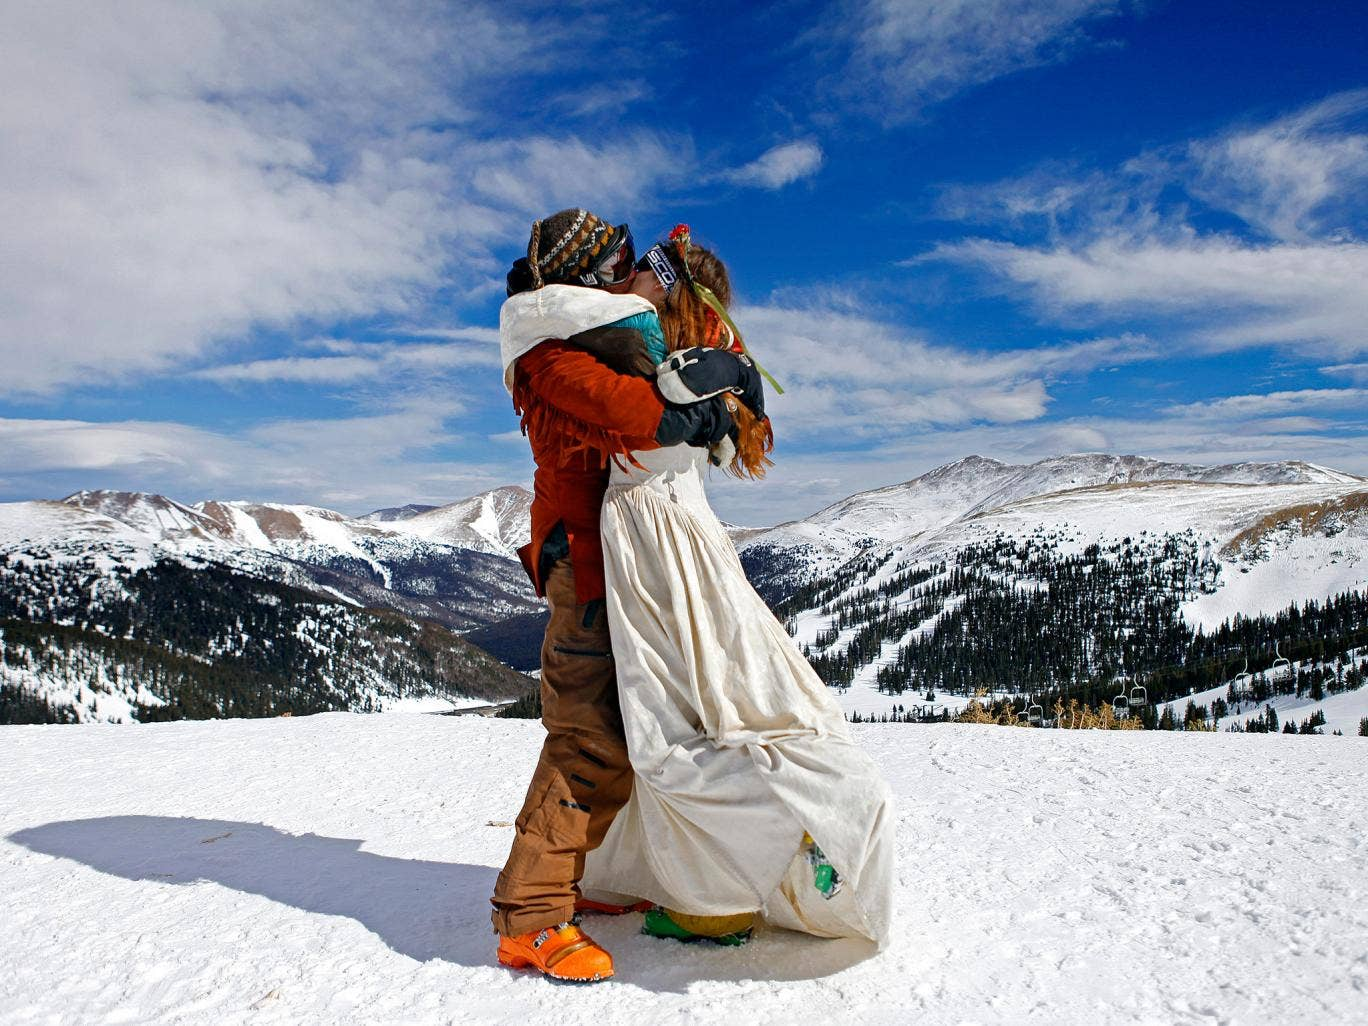 The government's new plans mean weddings could be held on mountaintops; like here at the 20th Annual Marry Me & Ski Free Mountaintop Matrimony in Loveland, Colorado.